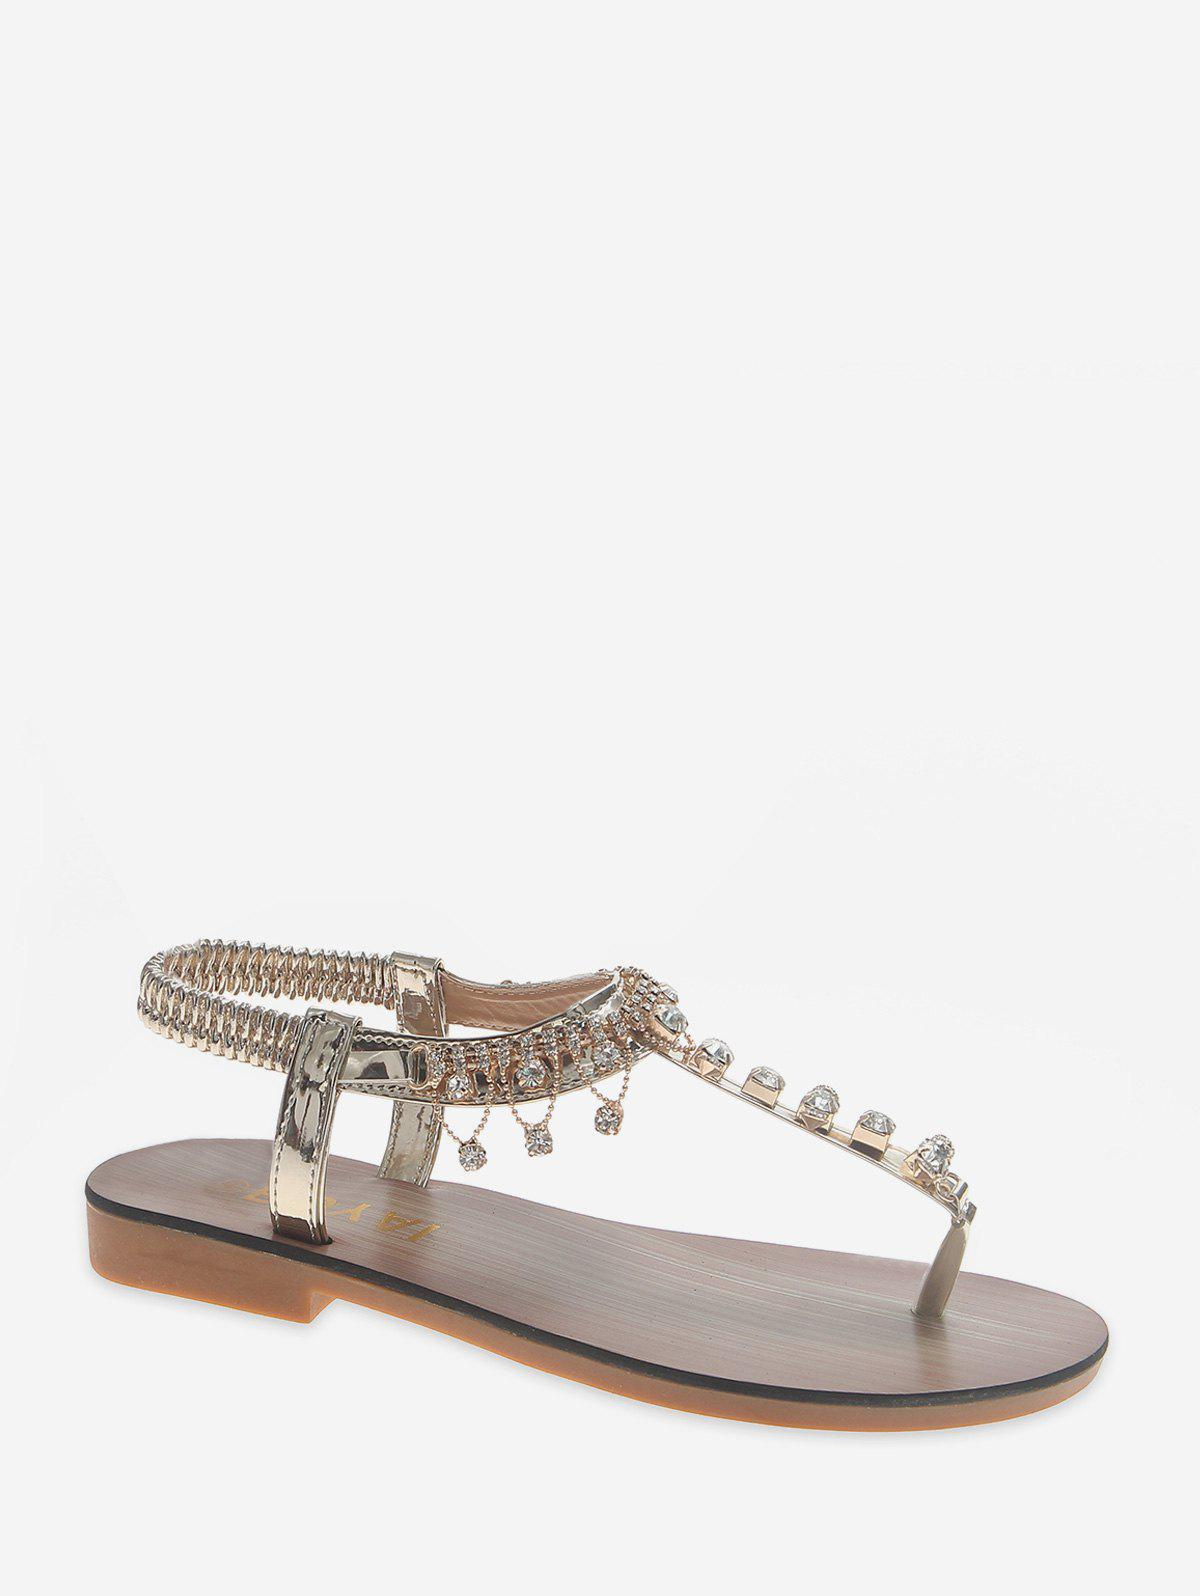 Unique Rhinestone Design Toe Clip Sandals